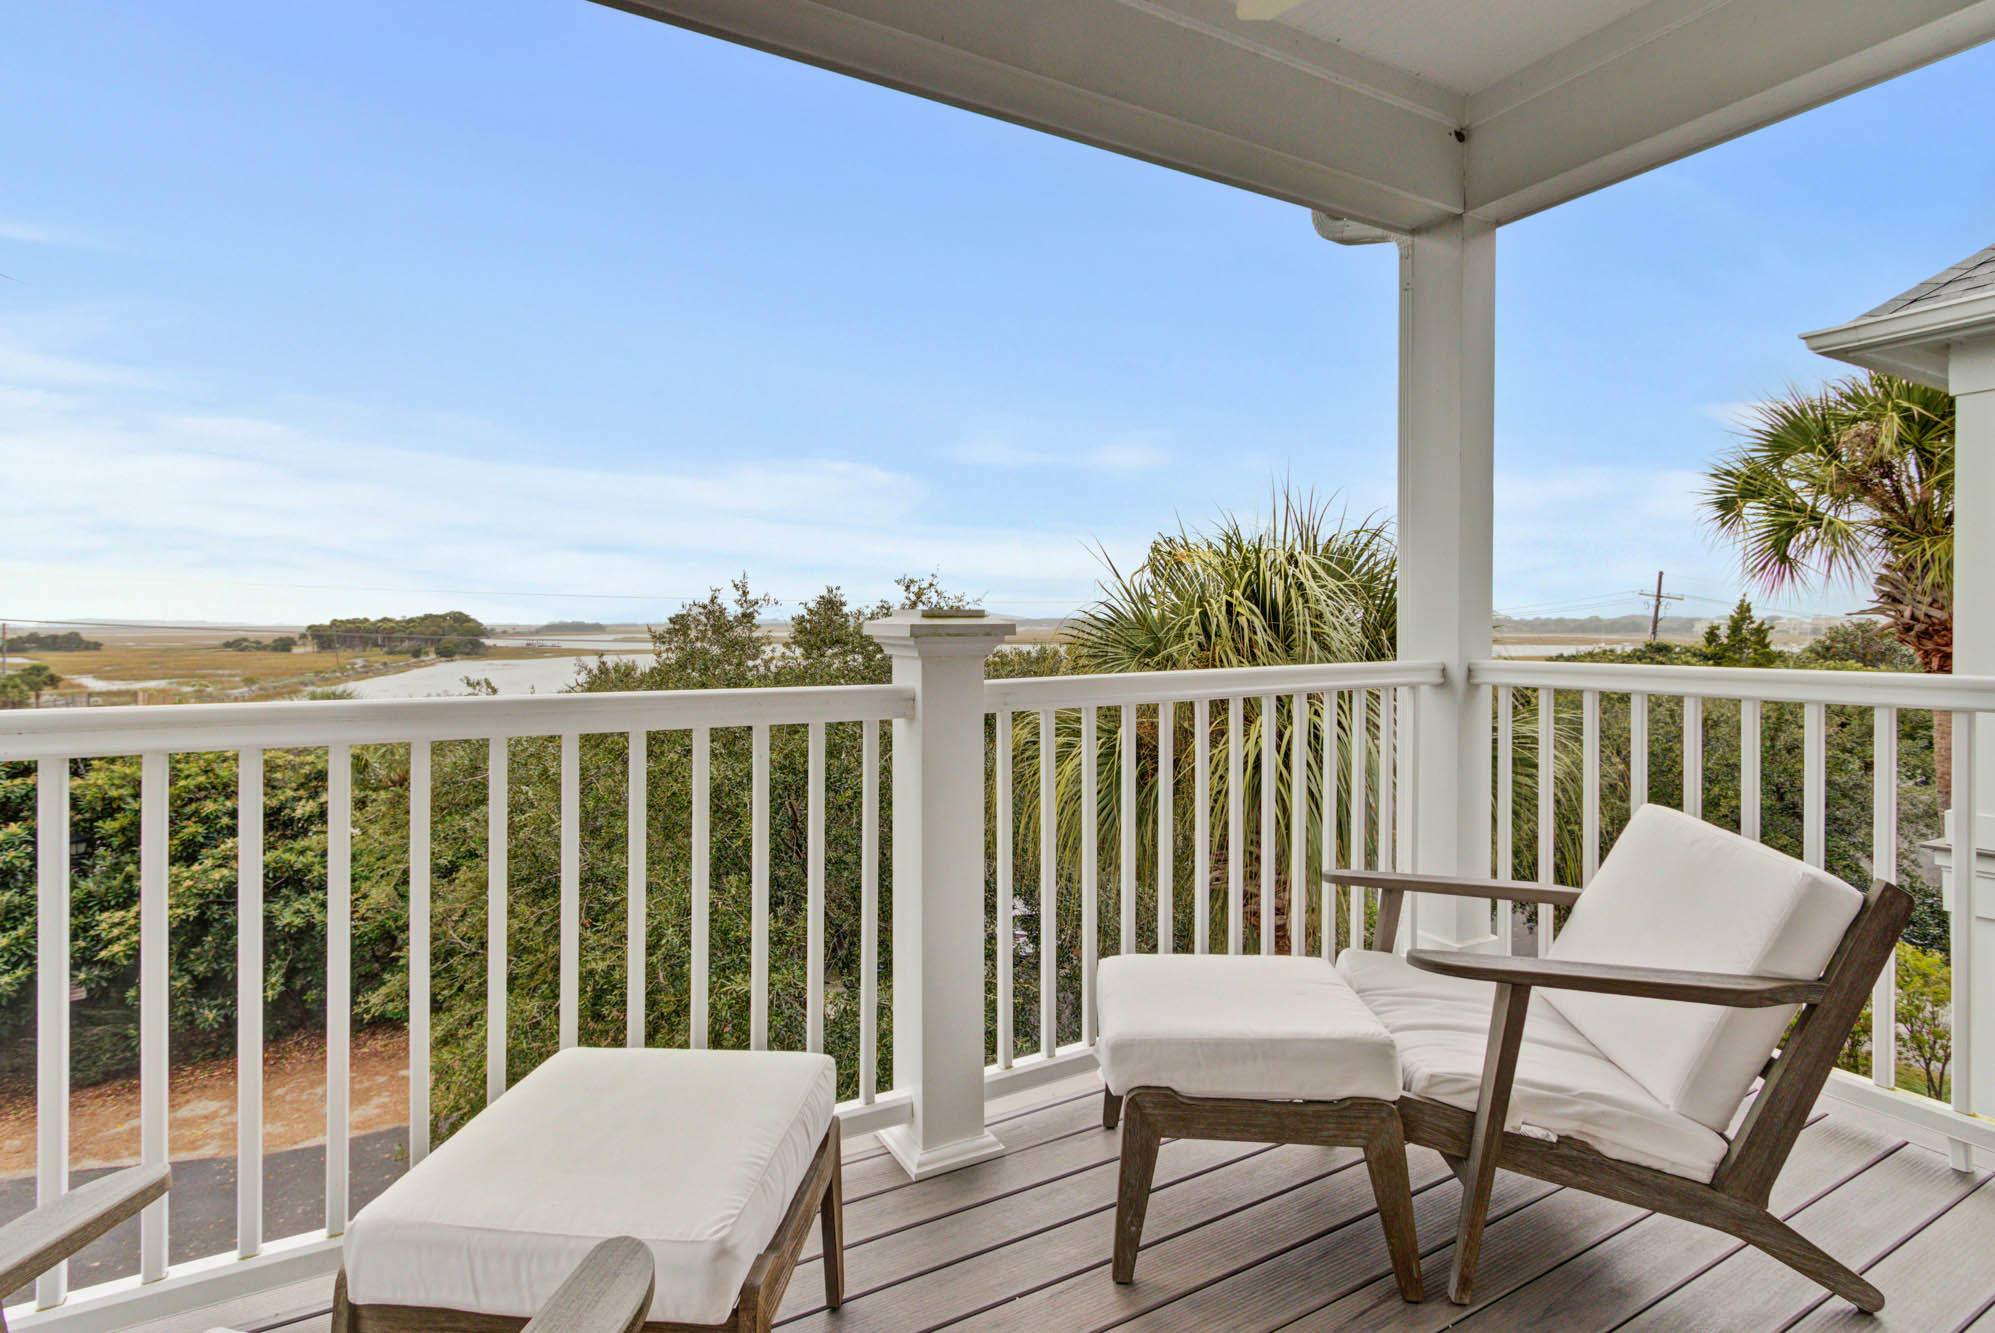 Folly Creek Place Homes For Sale - 2240 Folly, Folly Beach, SC - 9